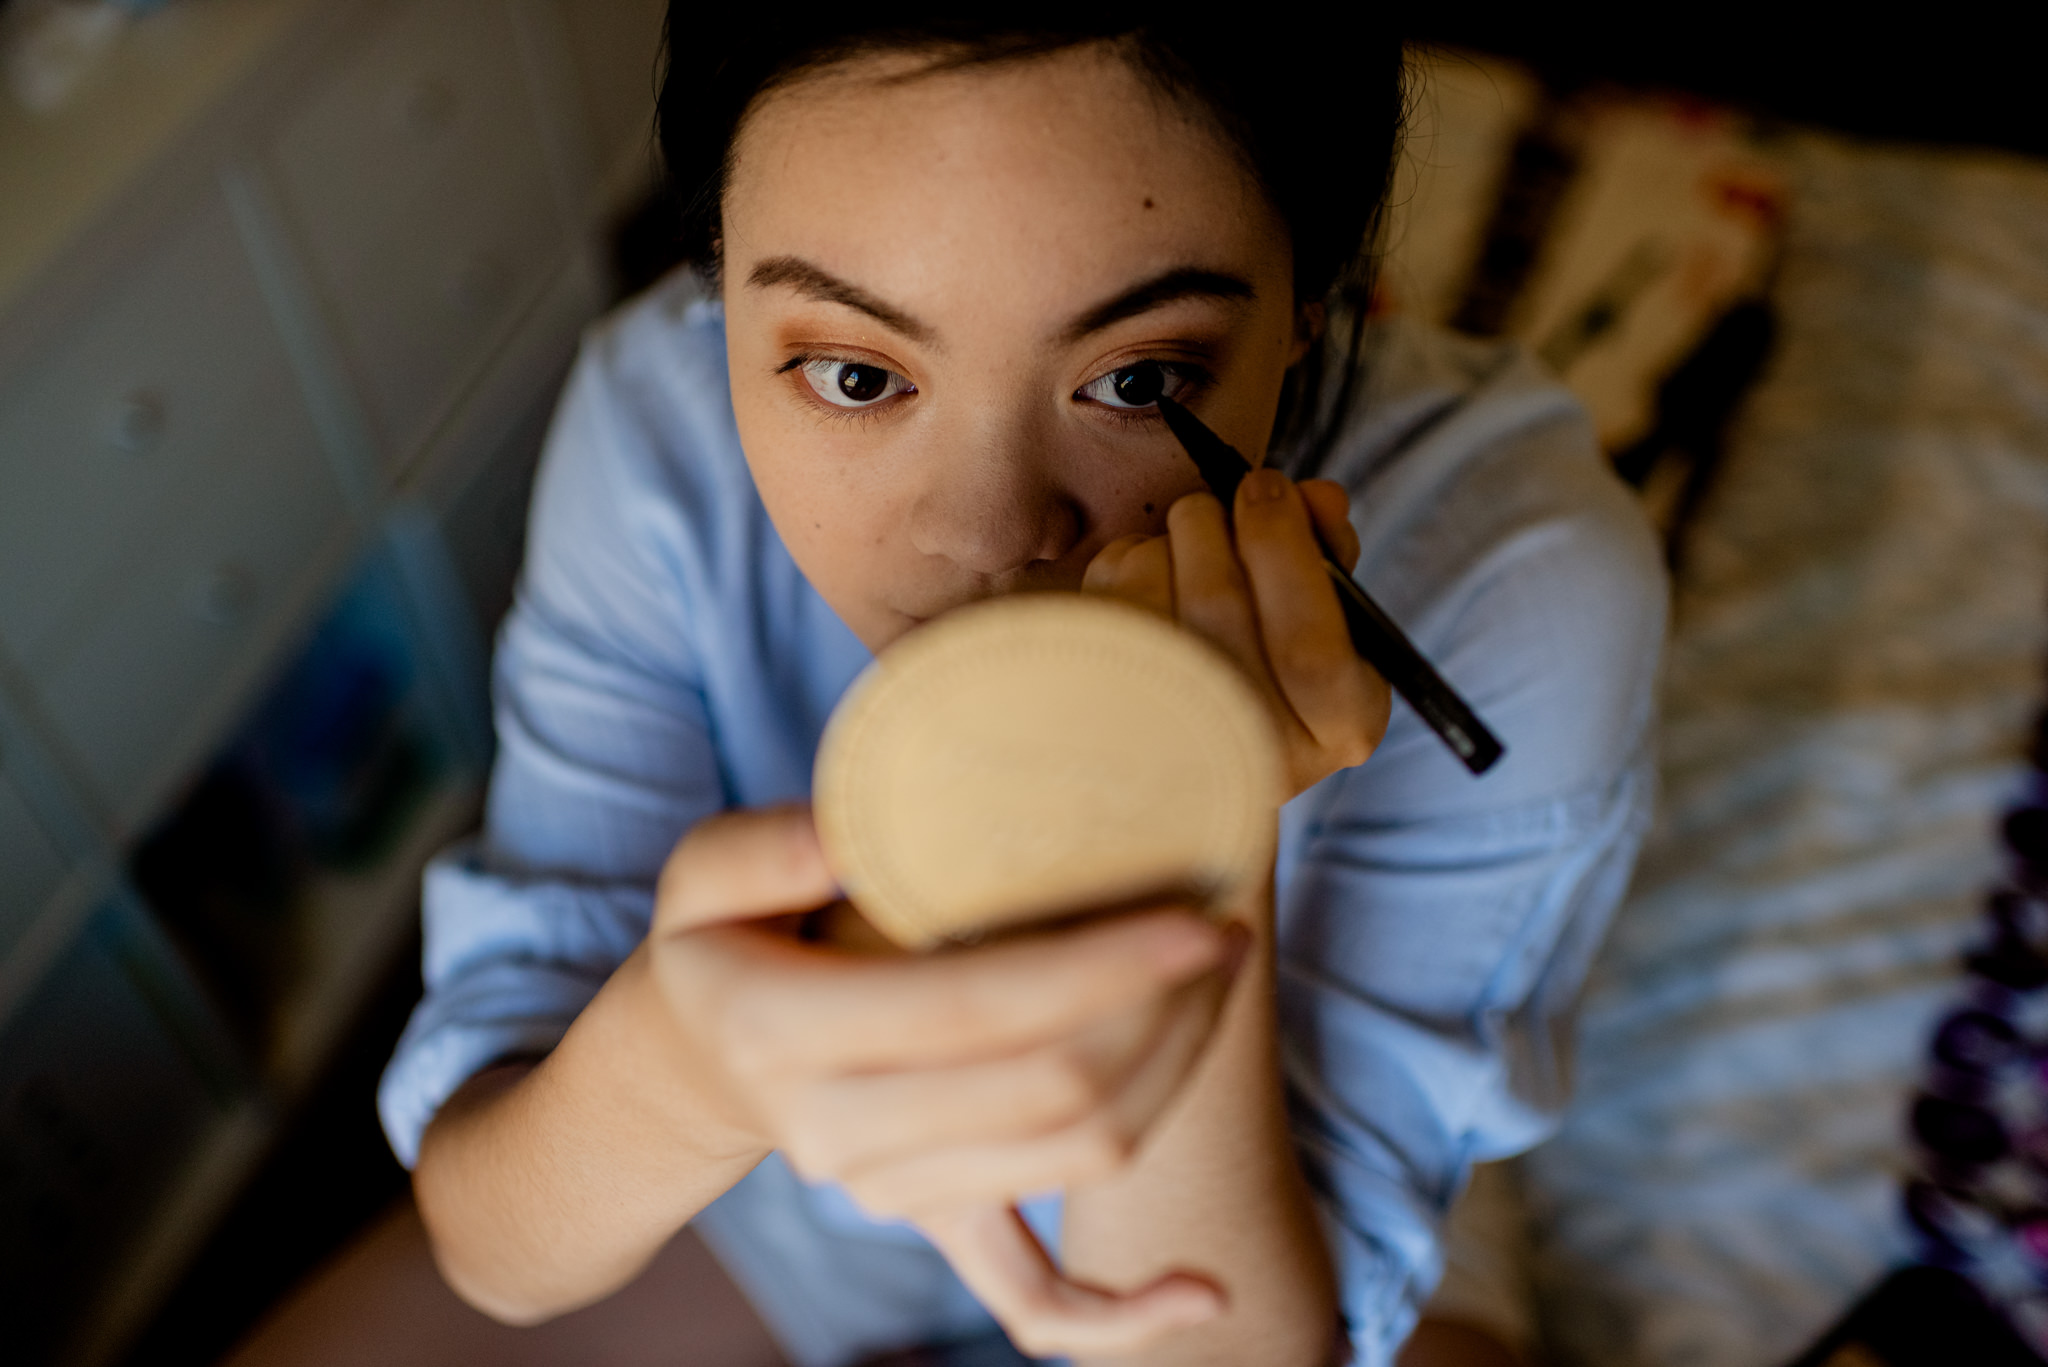 Asian woman draws on eye makeup looking in a handheld mirror